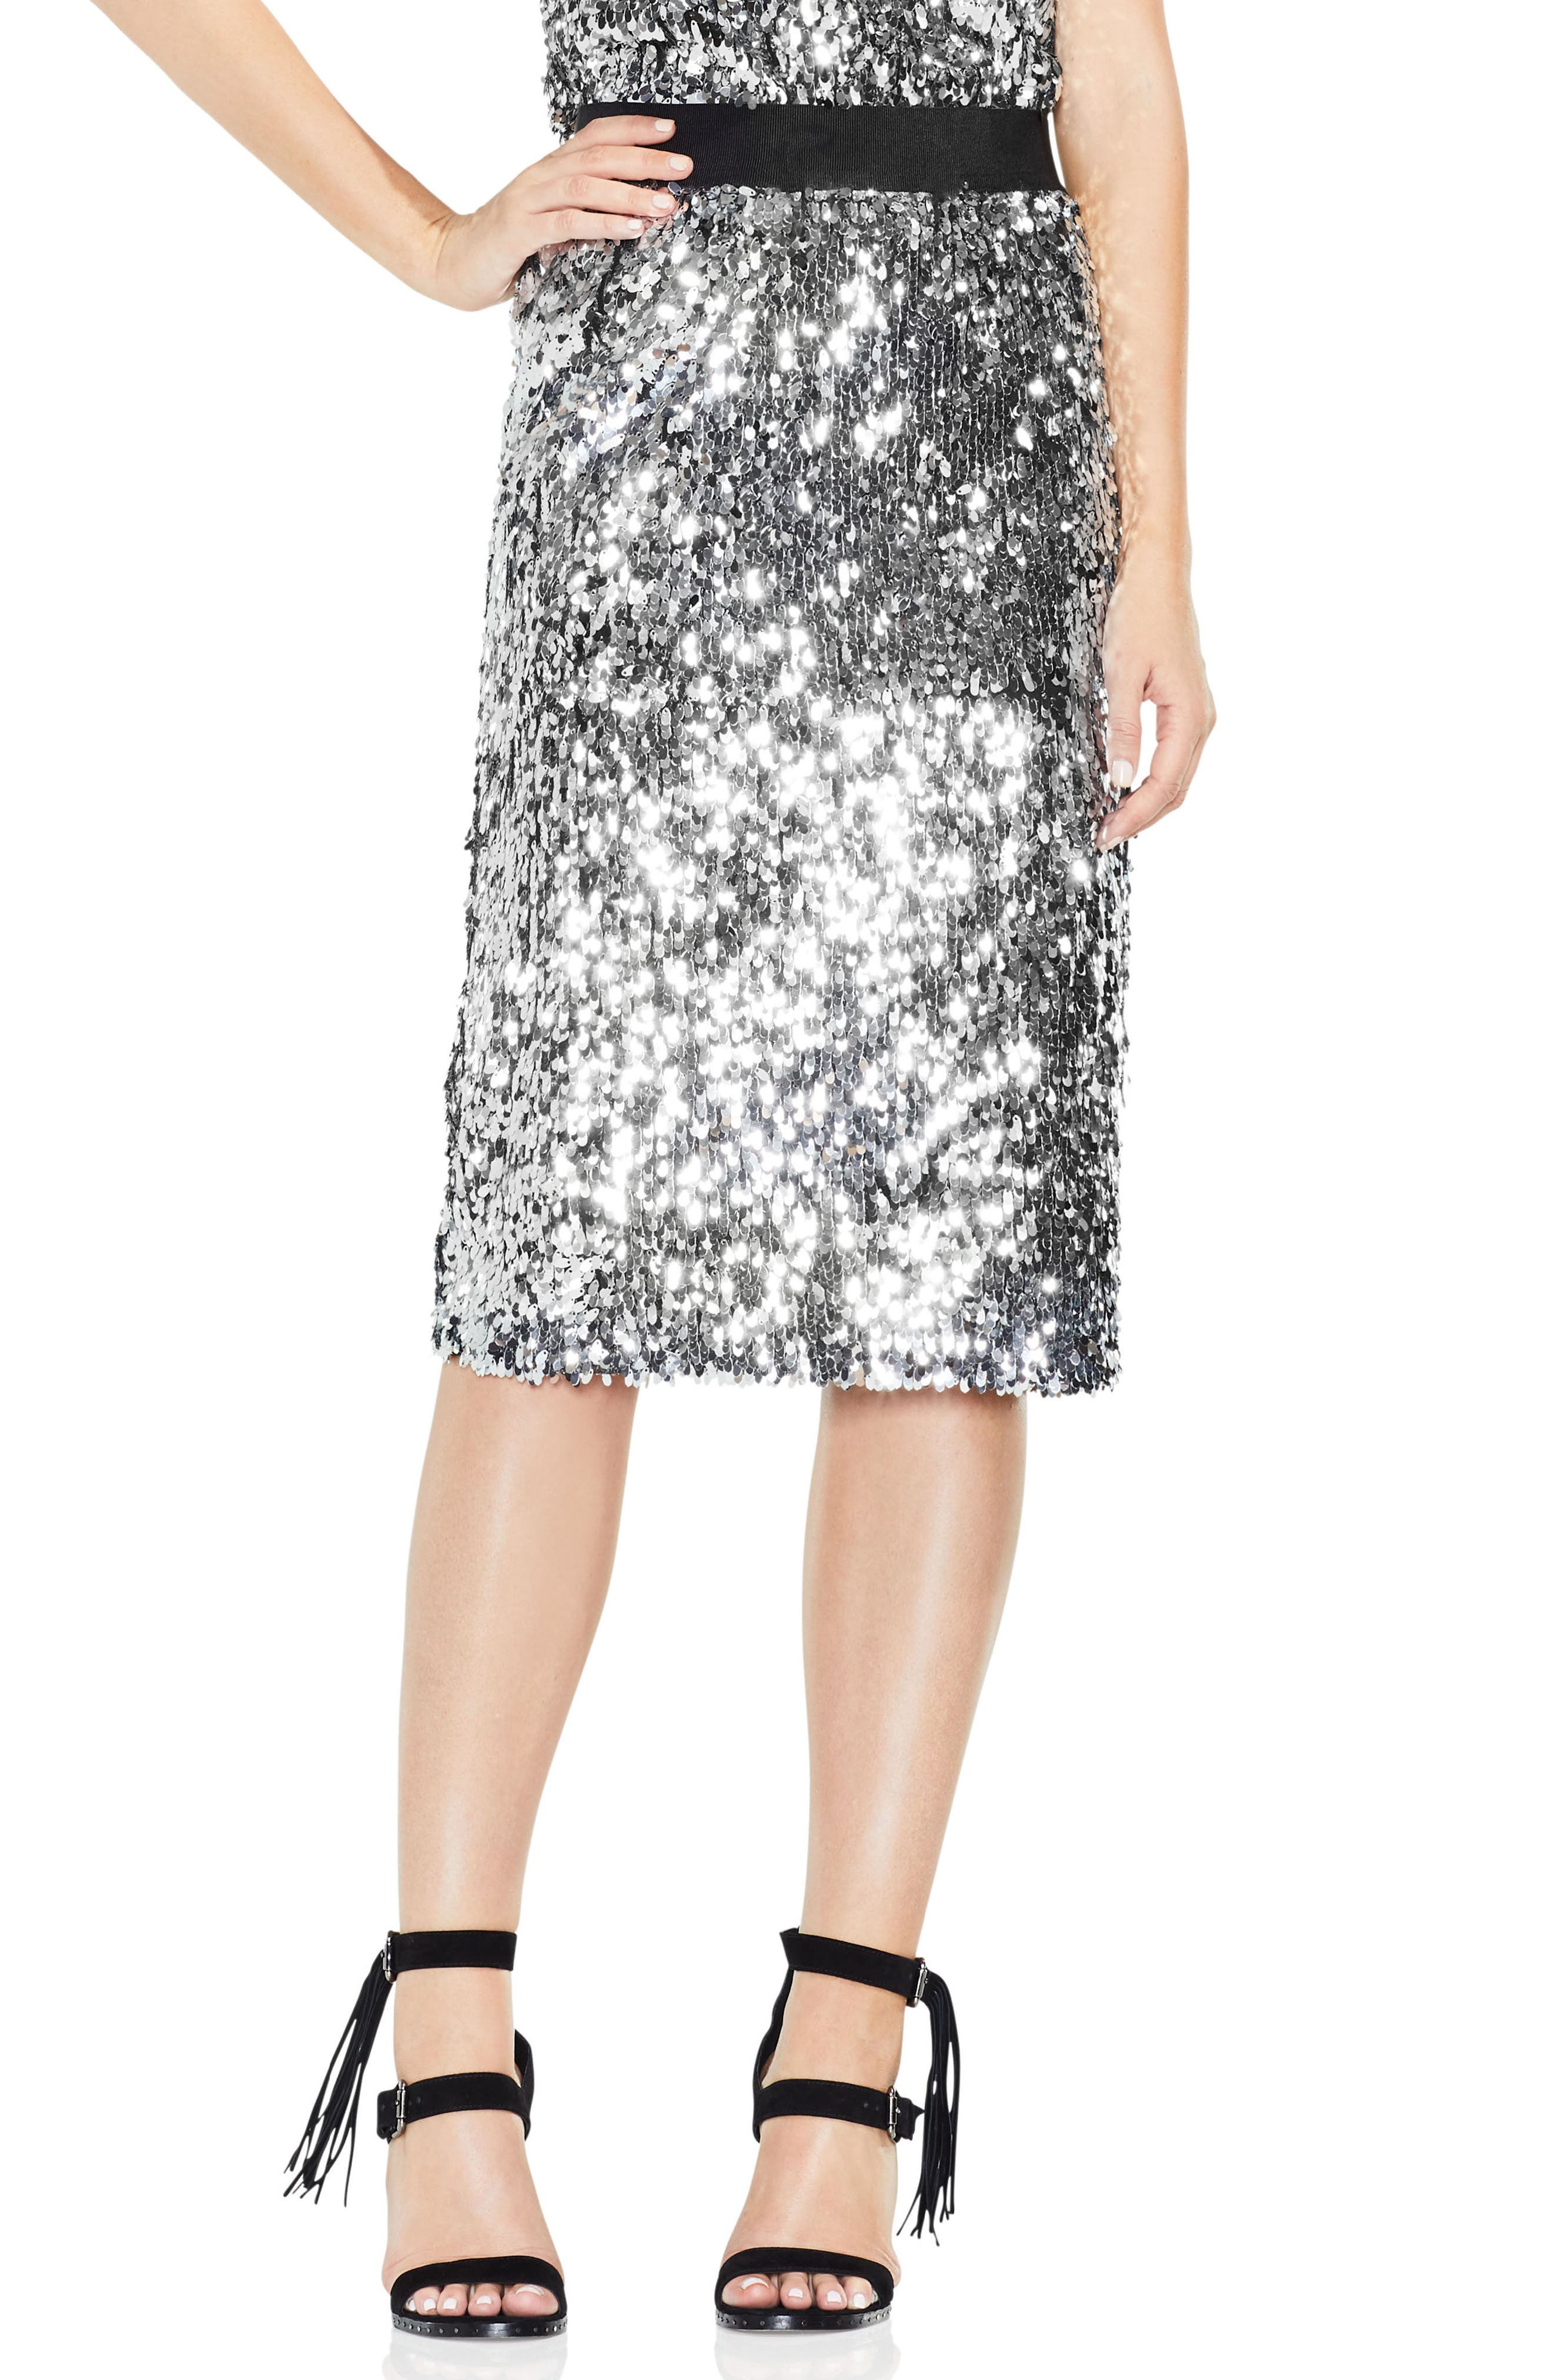 Alternate Image 1 Selected - Vince Camuto Allover Sequin Pencil Skirt